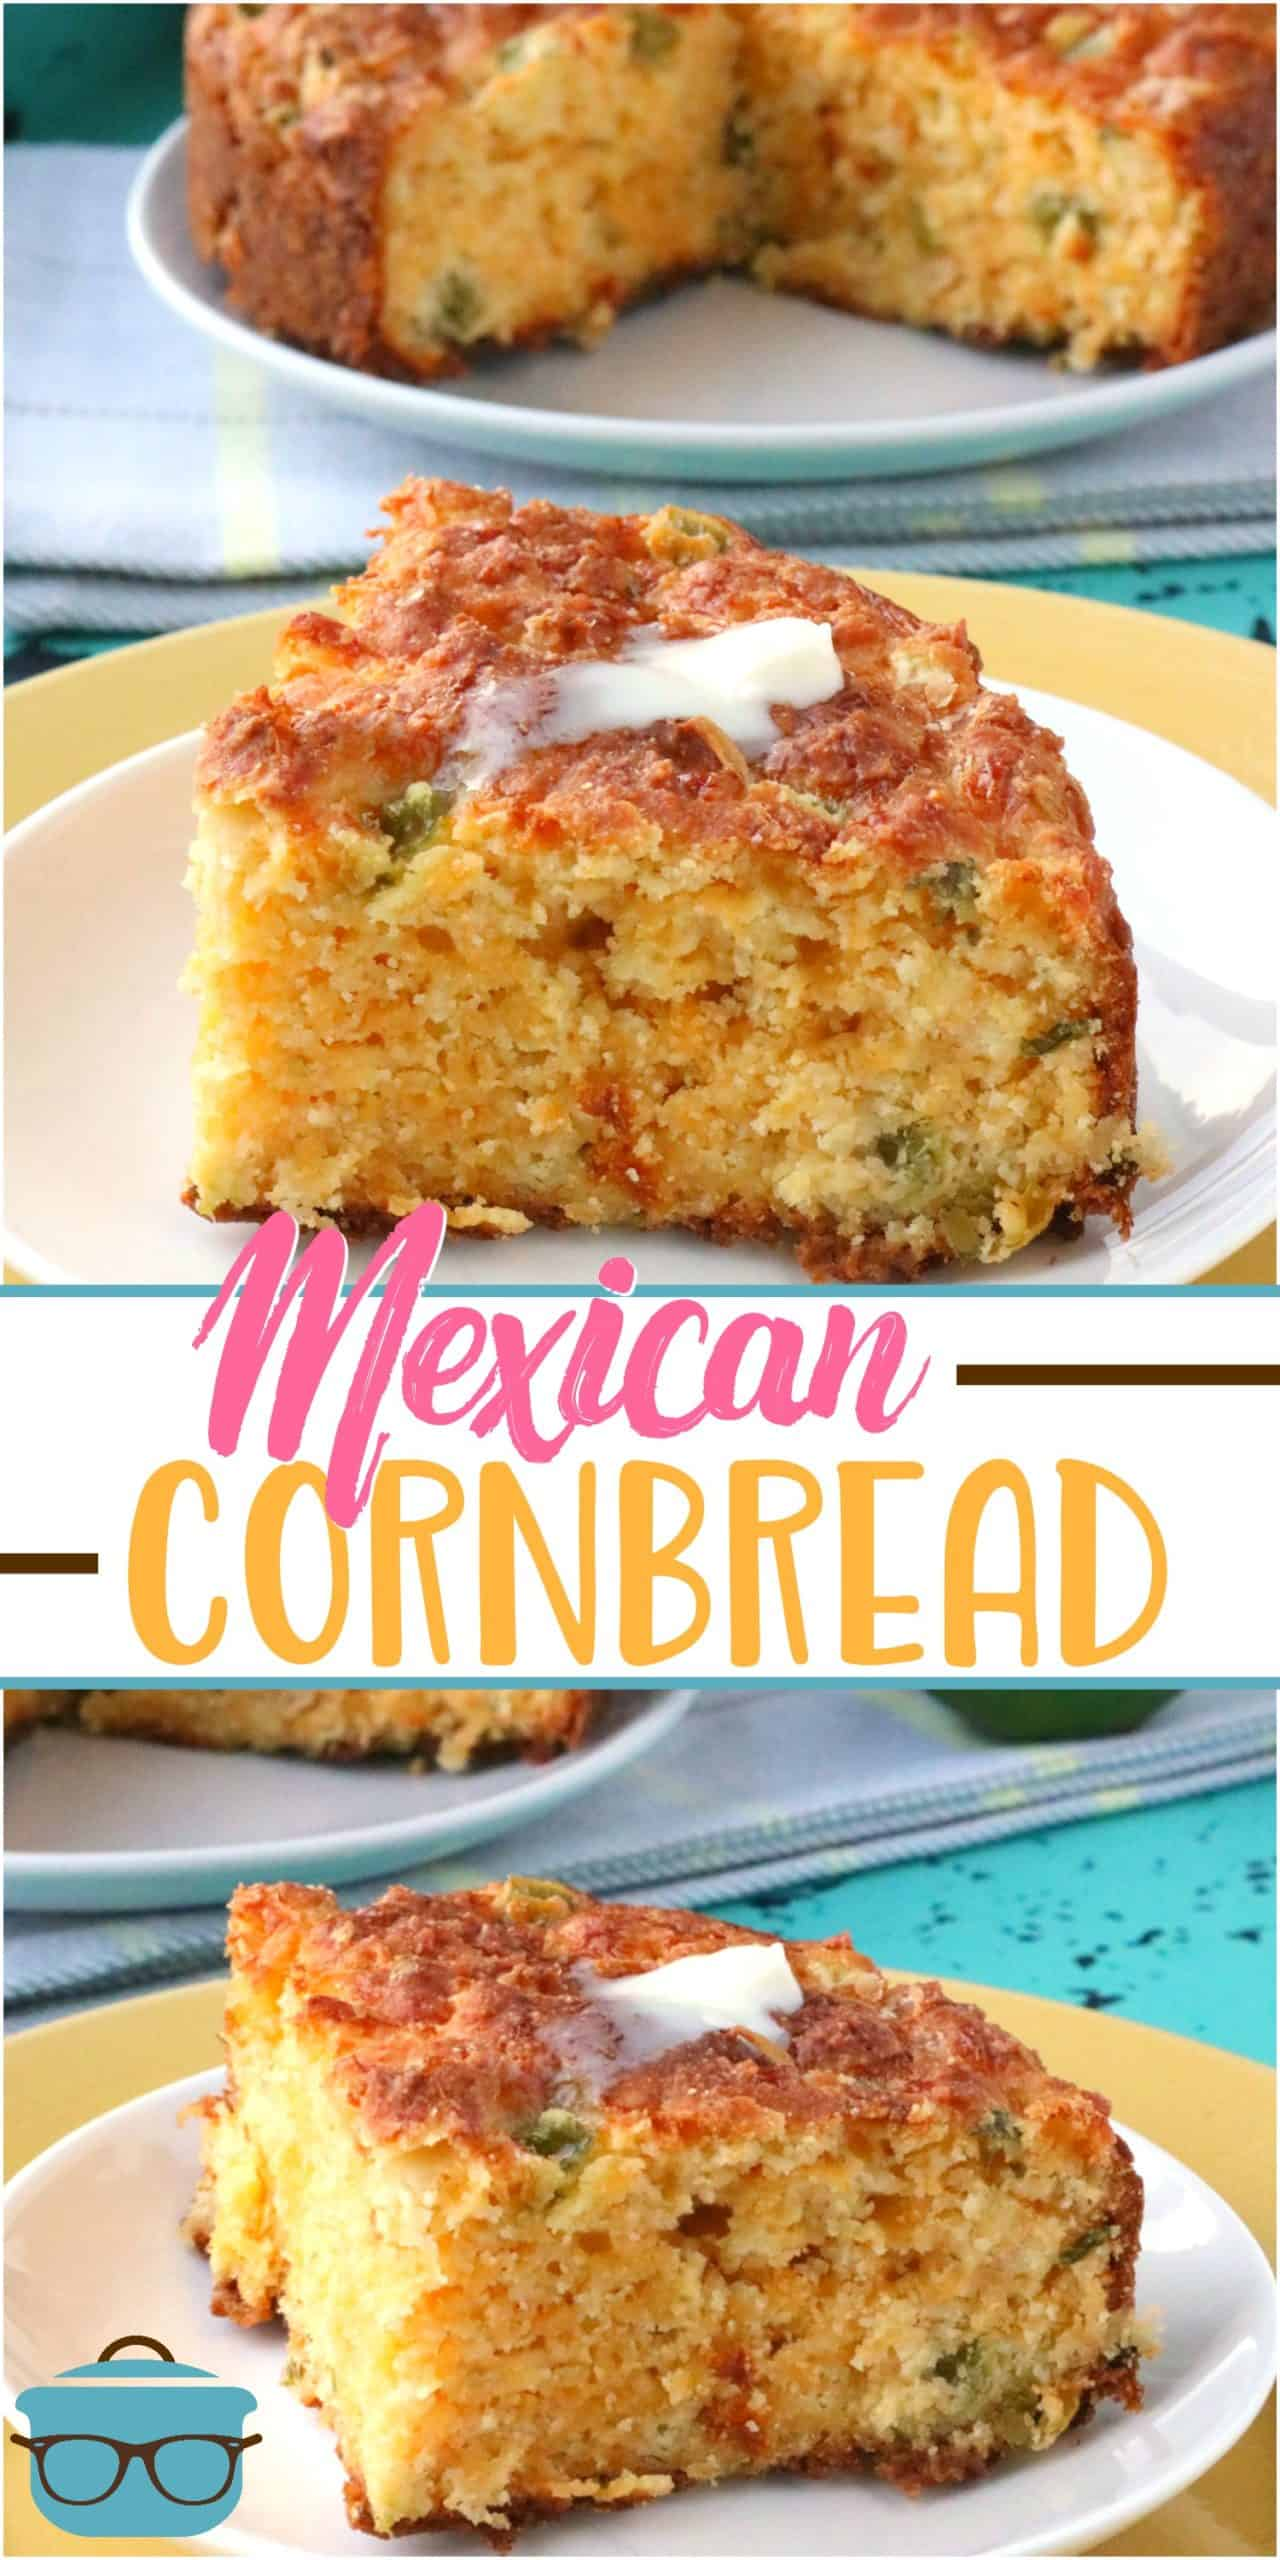 Mexican-Style Cornbread is an easy homemade recipe made with cornmeal, flour, cheddar cheese, cream corn, green onions, and peppers!